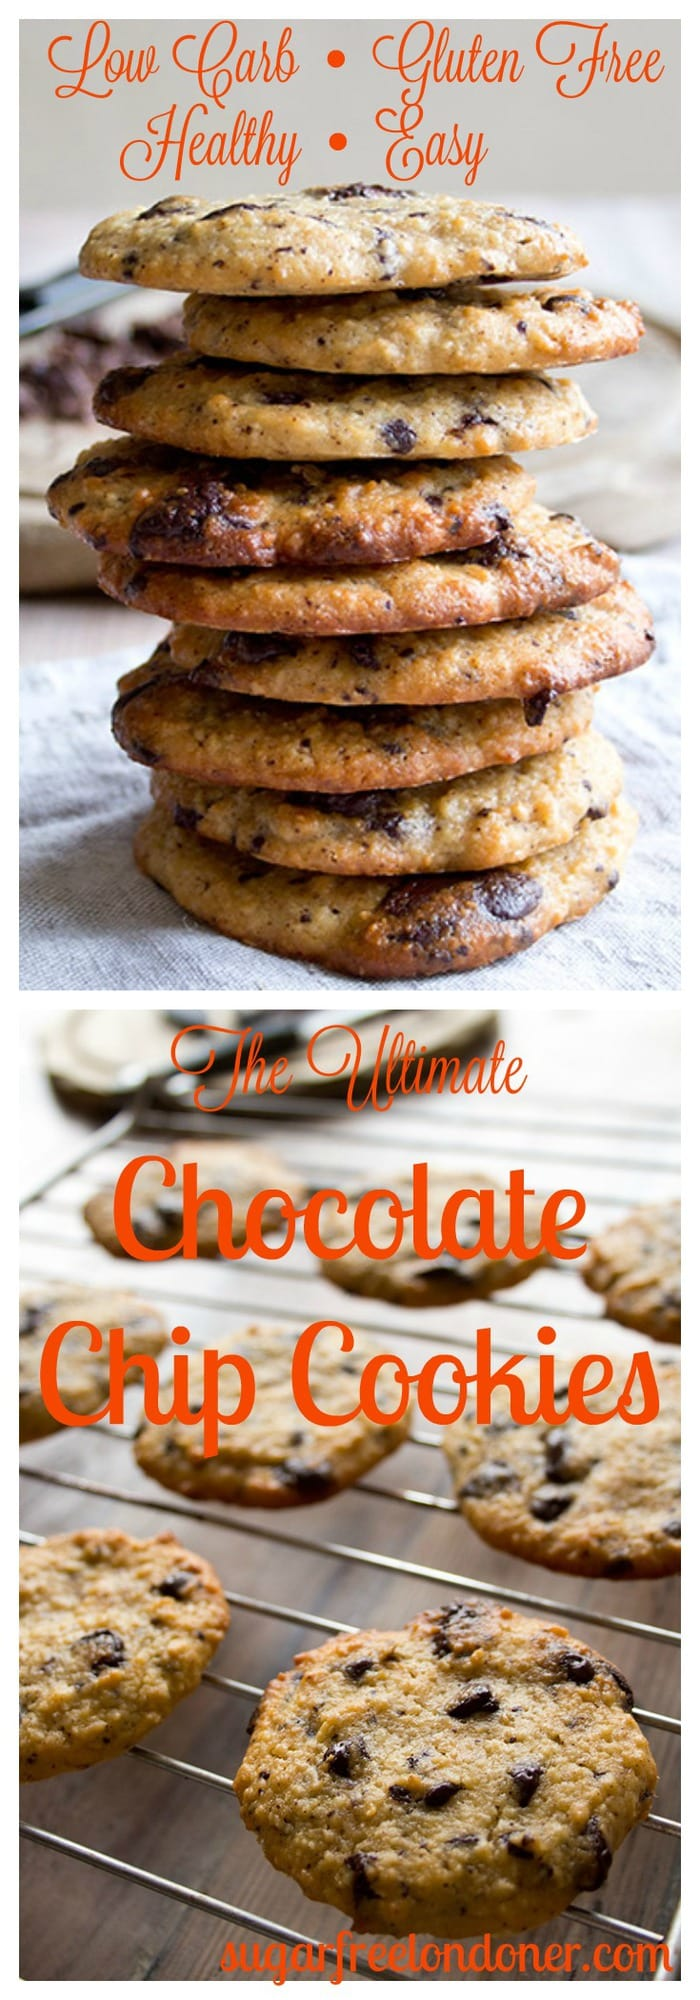 share: These healthy low carb chocolate chip cookies are the perfect ...